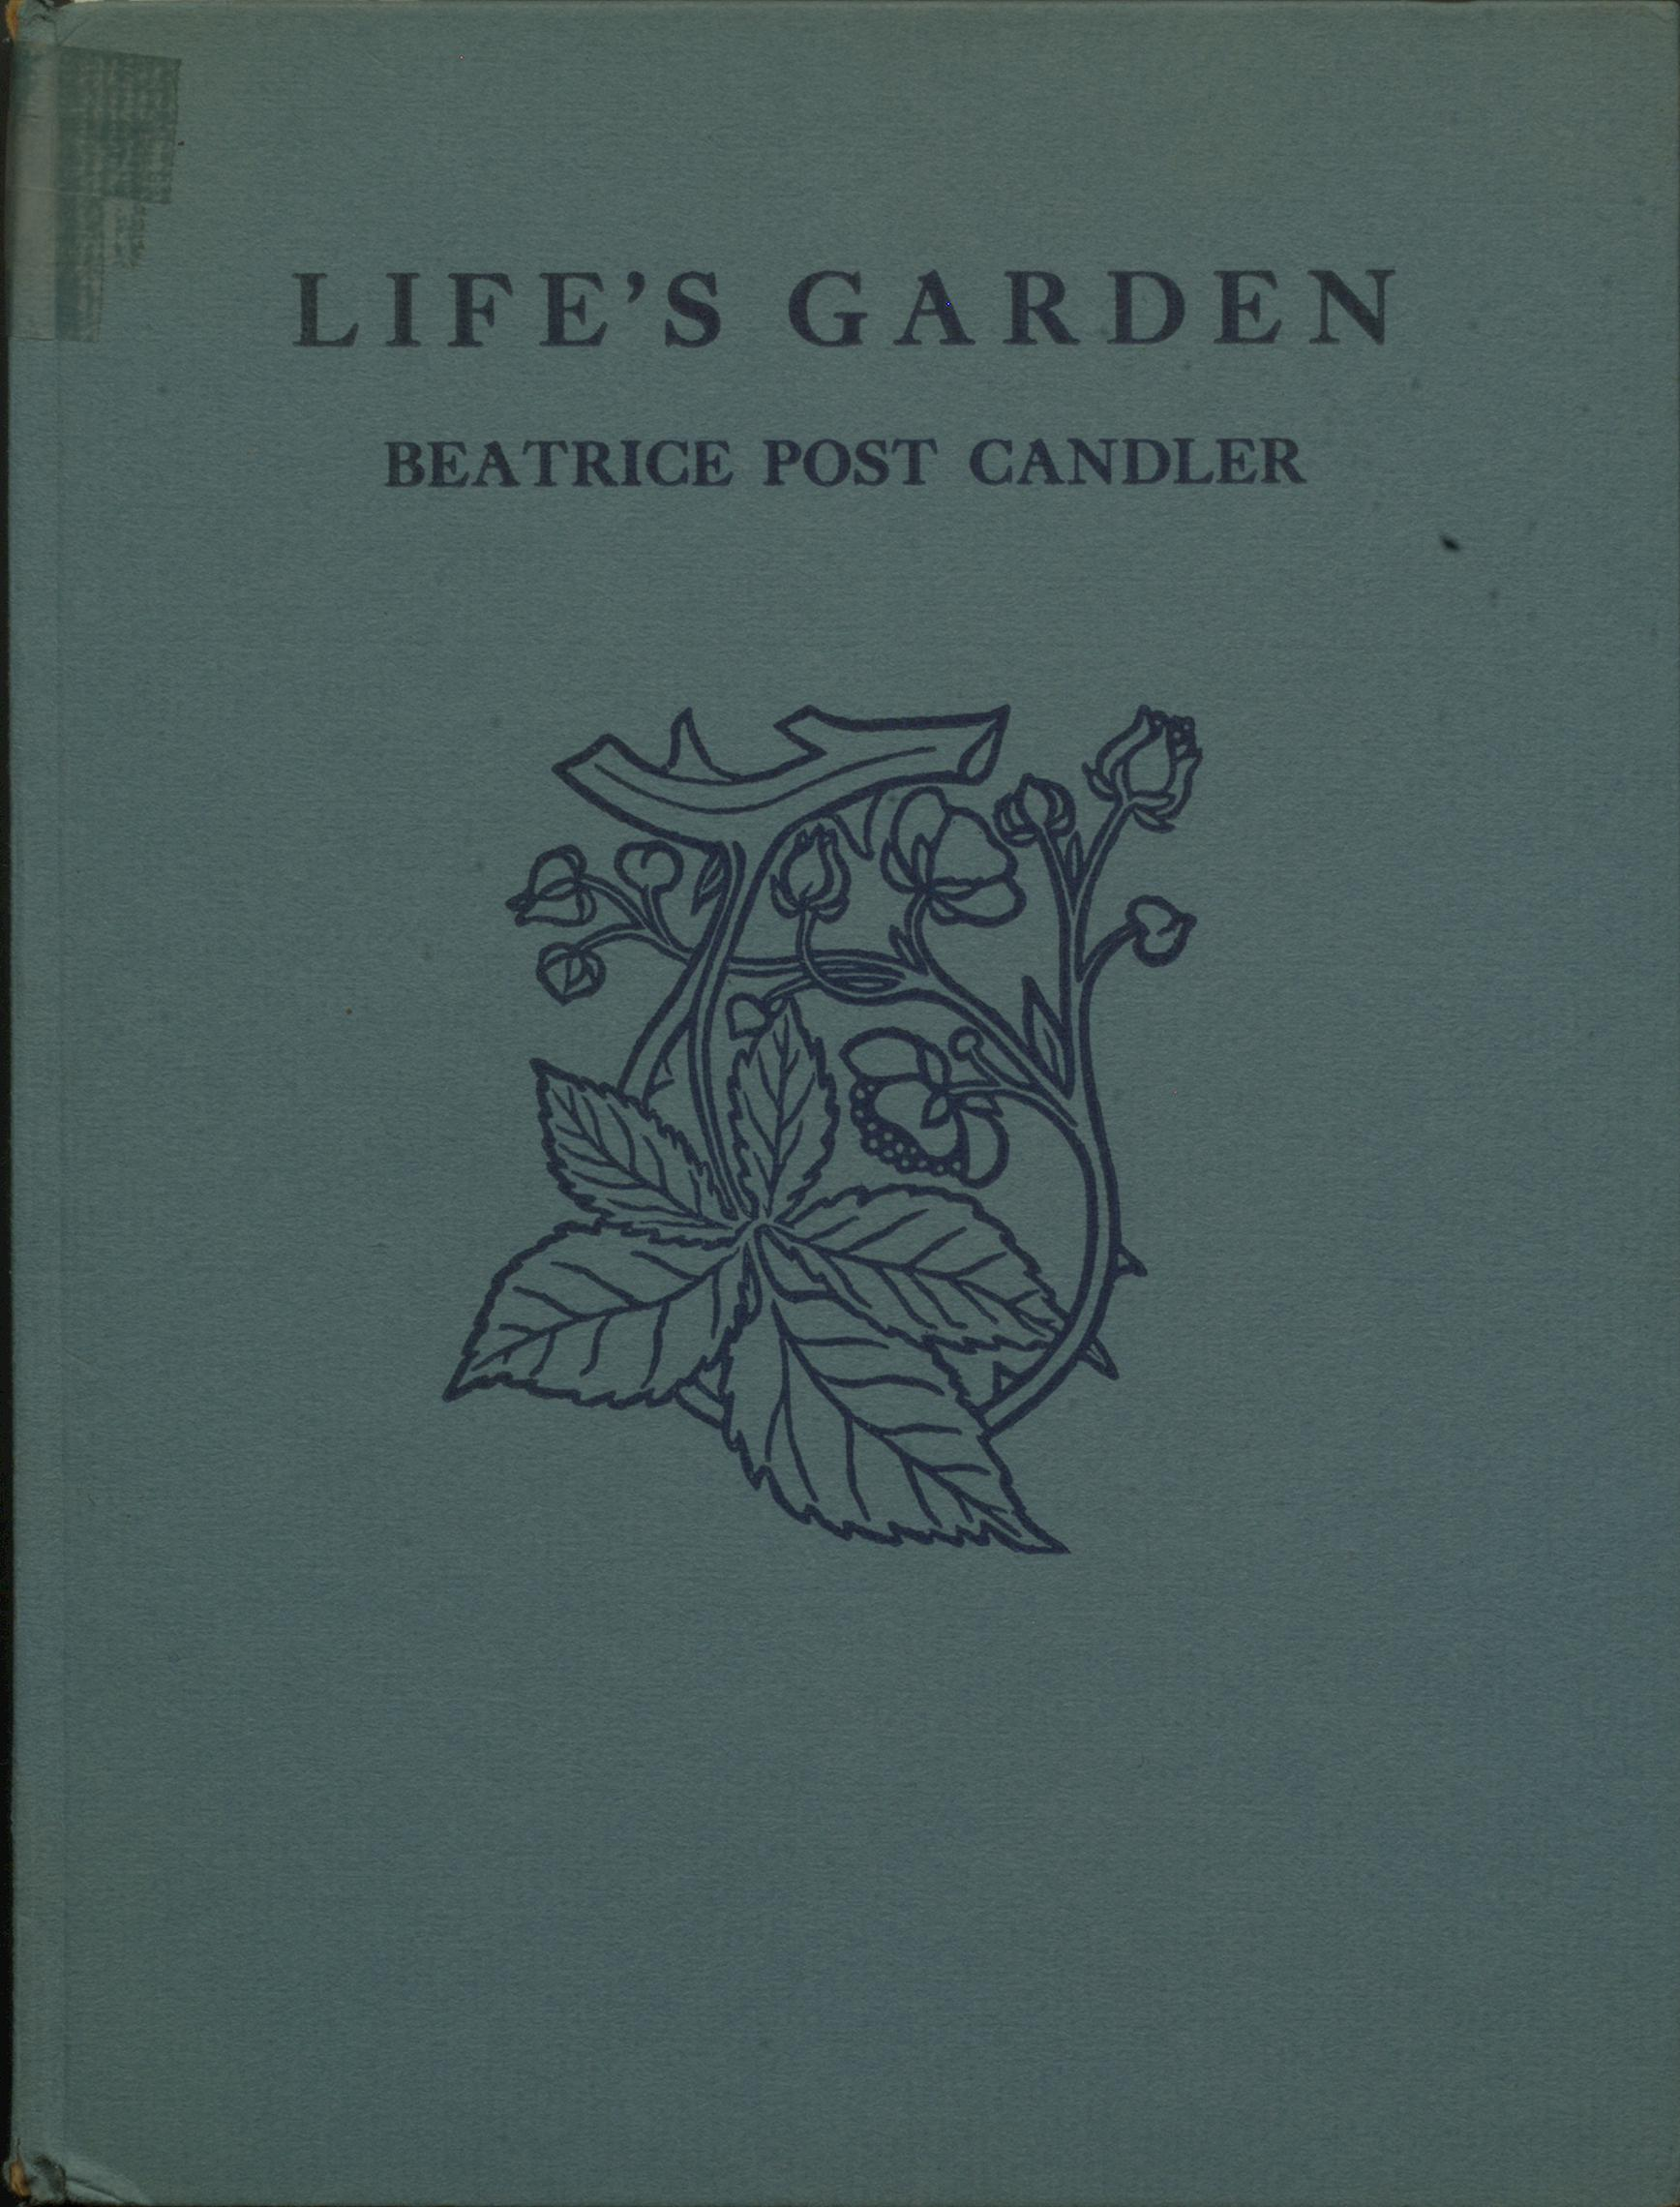 Life's Garden, by Beatrice Post Candler